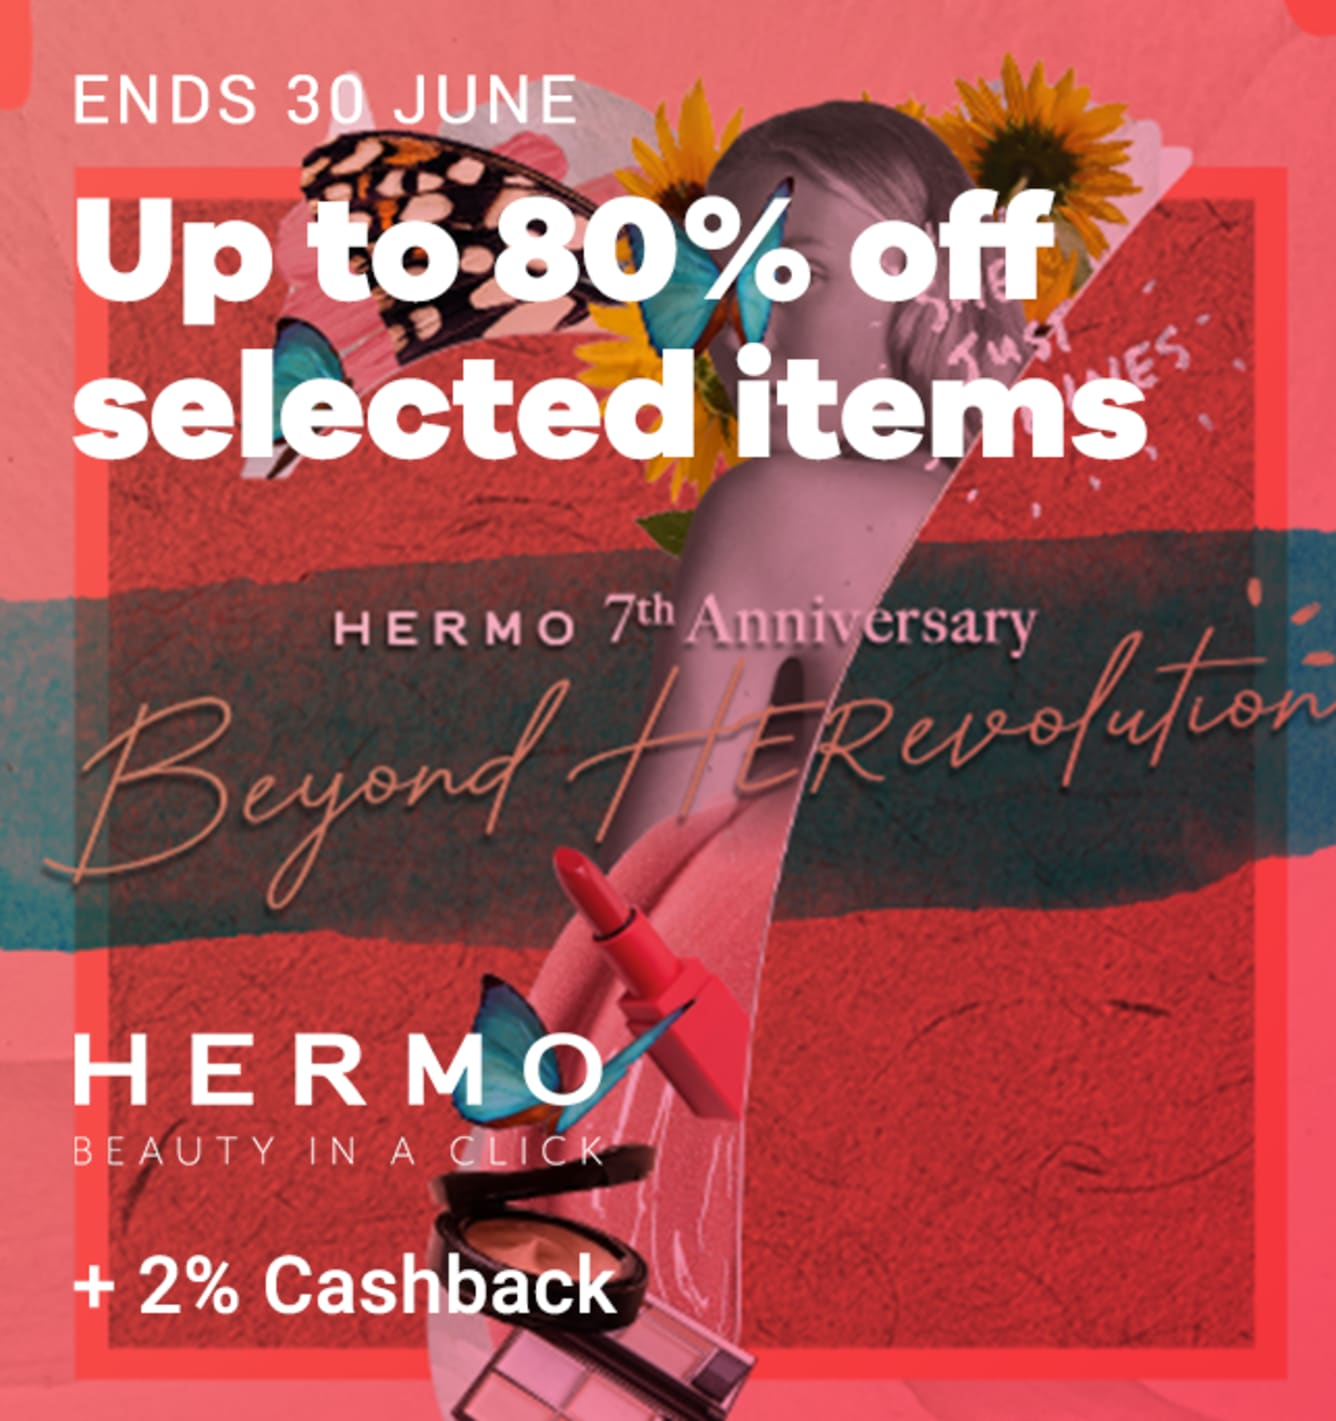 Hermo 612 7th Anniversary Sale